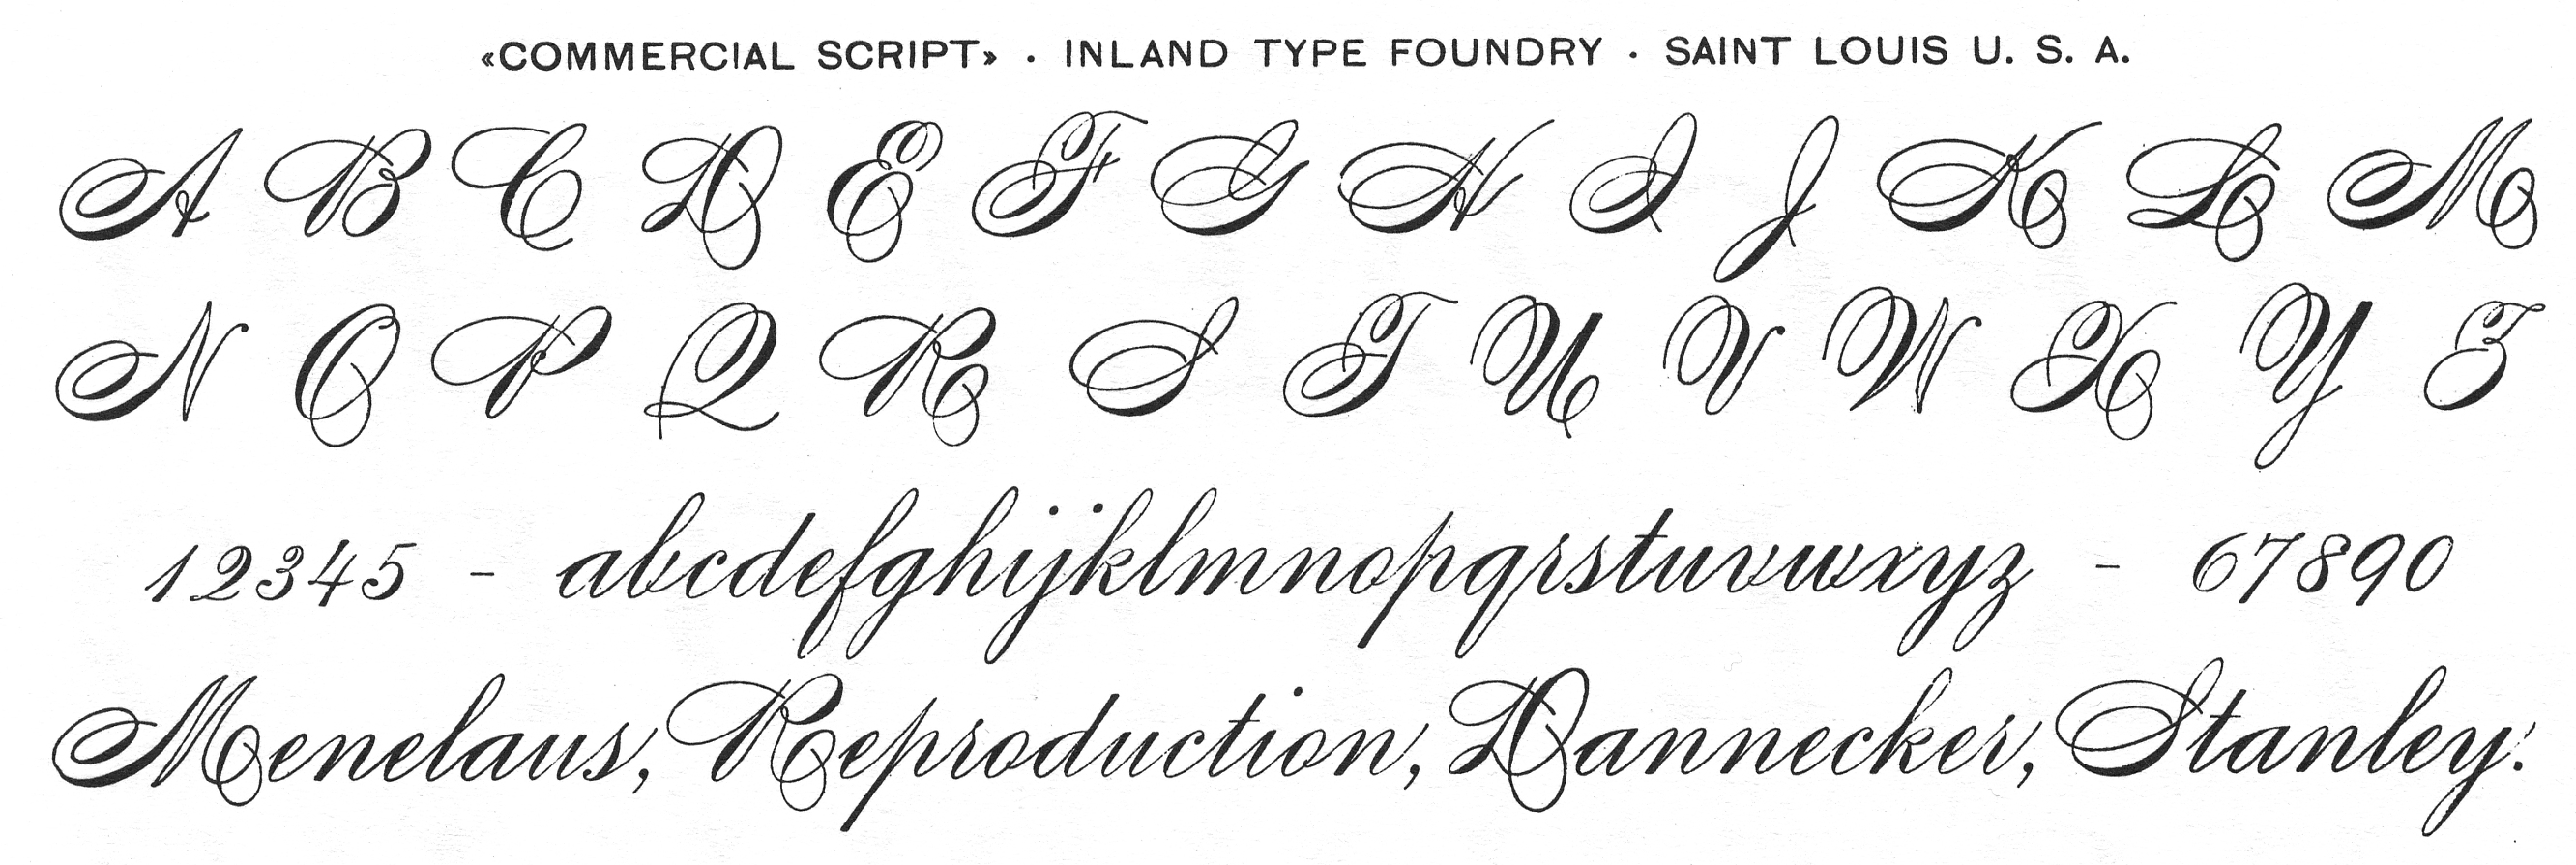 Earliest Examples Of Scripts Reproduced In Type